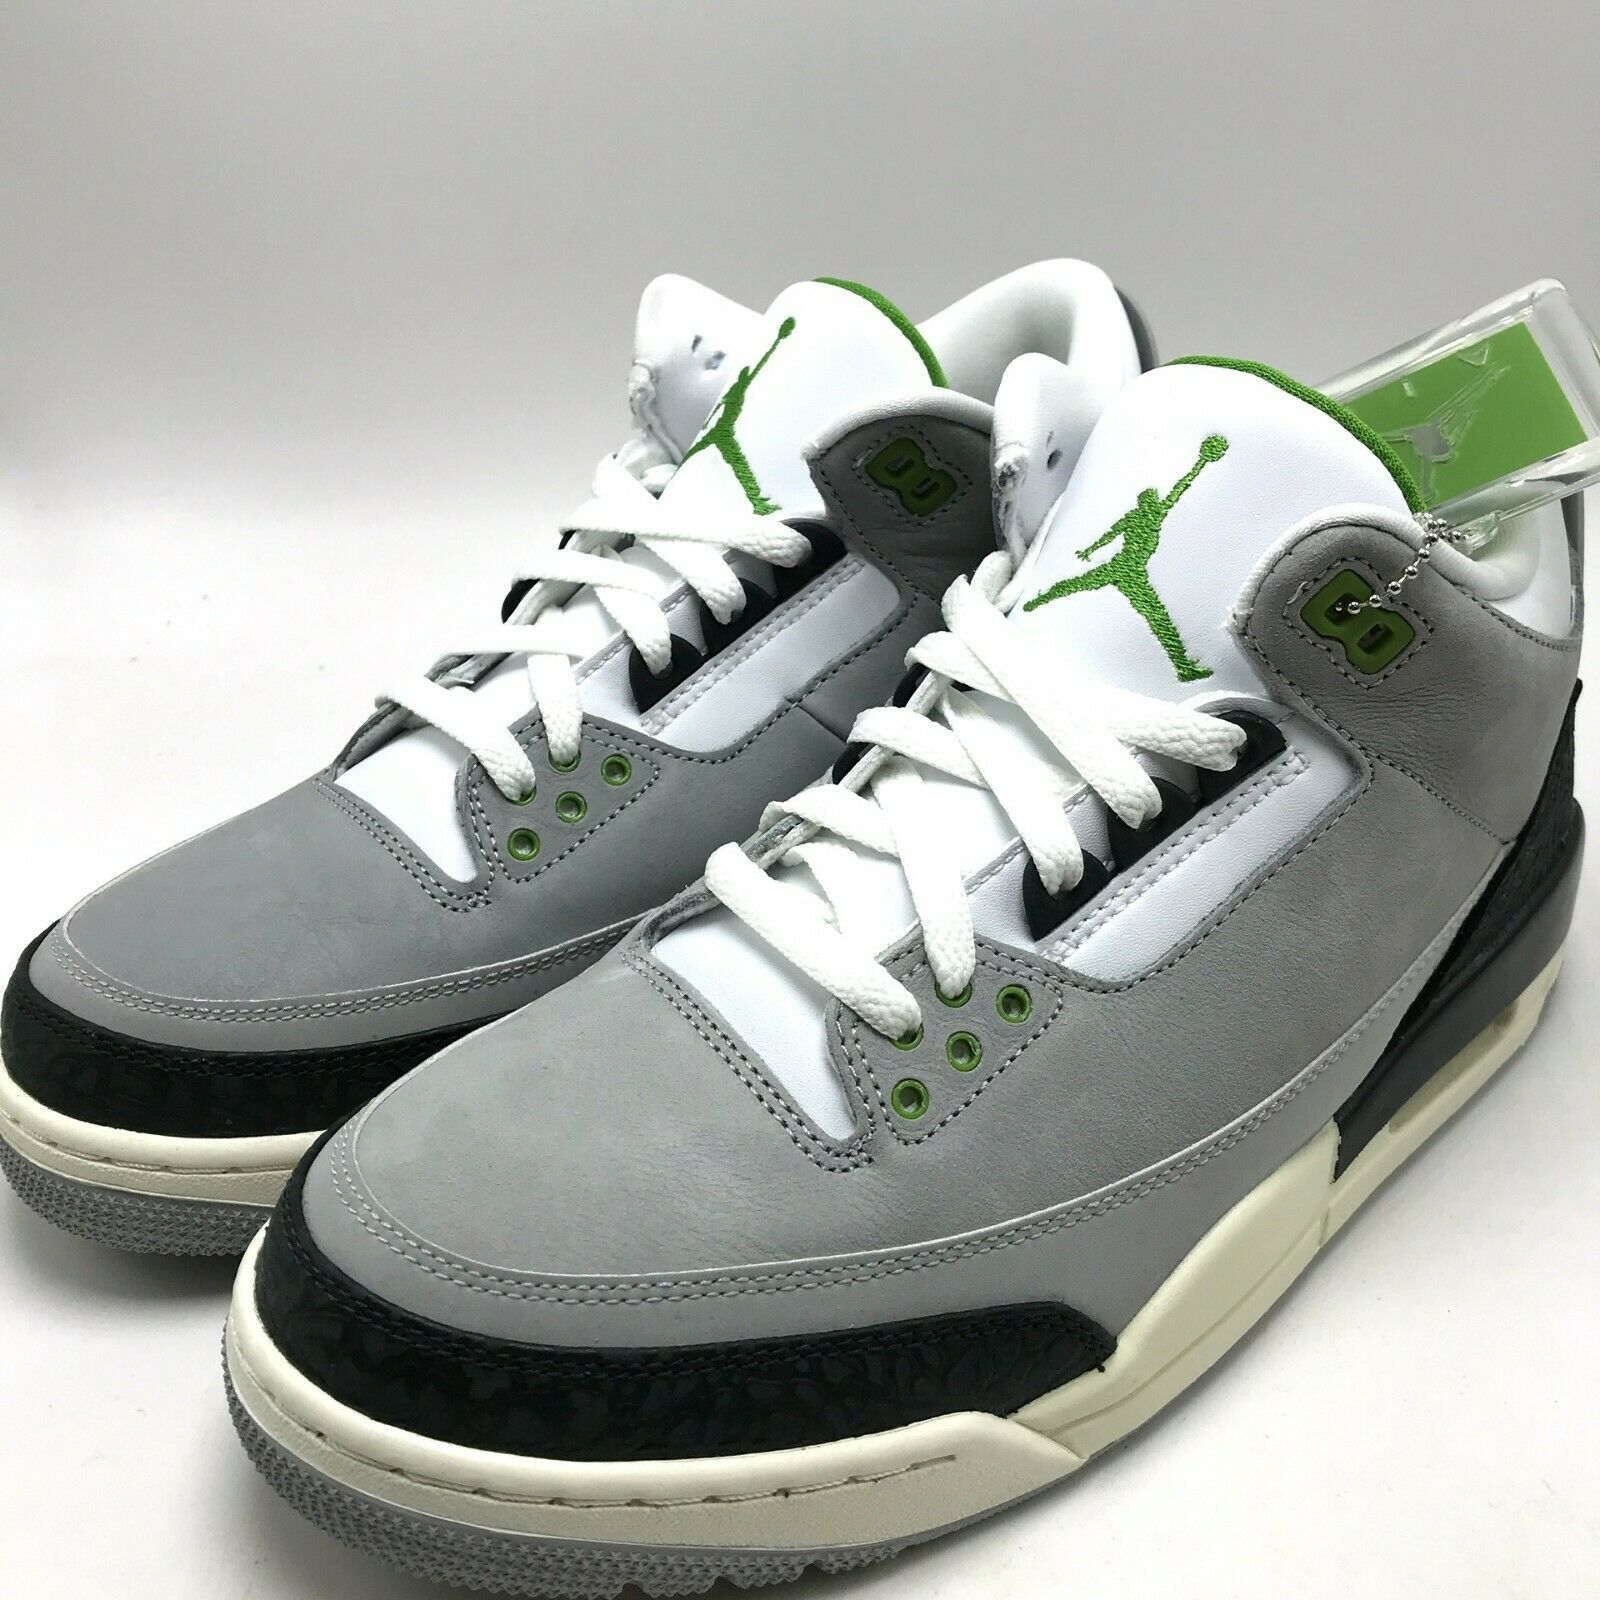 dc0e5bb7 Air Jordan 3 Retro Chlorophyll Mens 136064-006 Smoke Grey Black ...